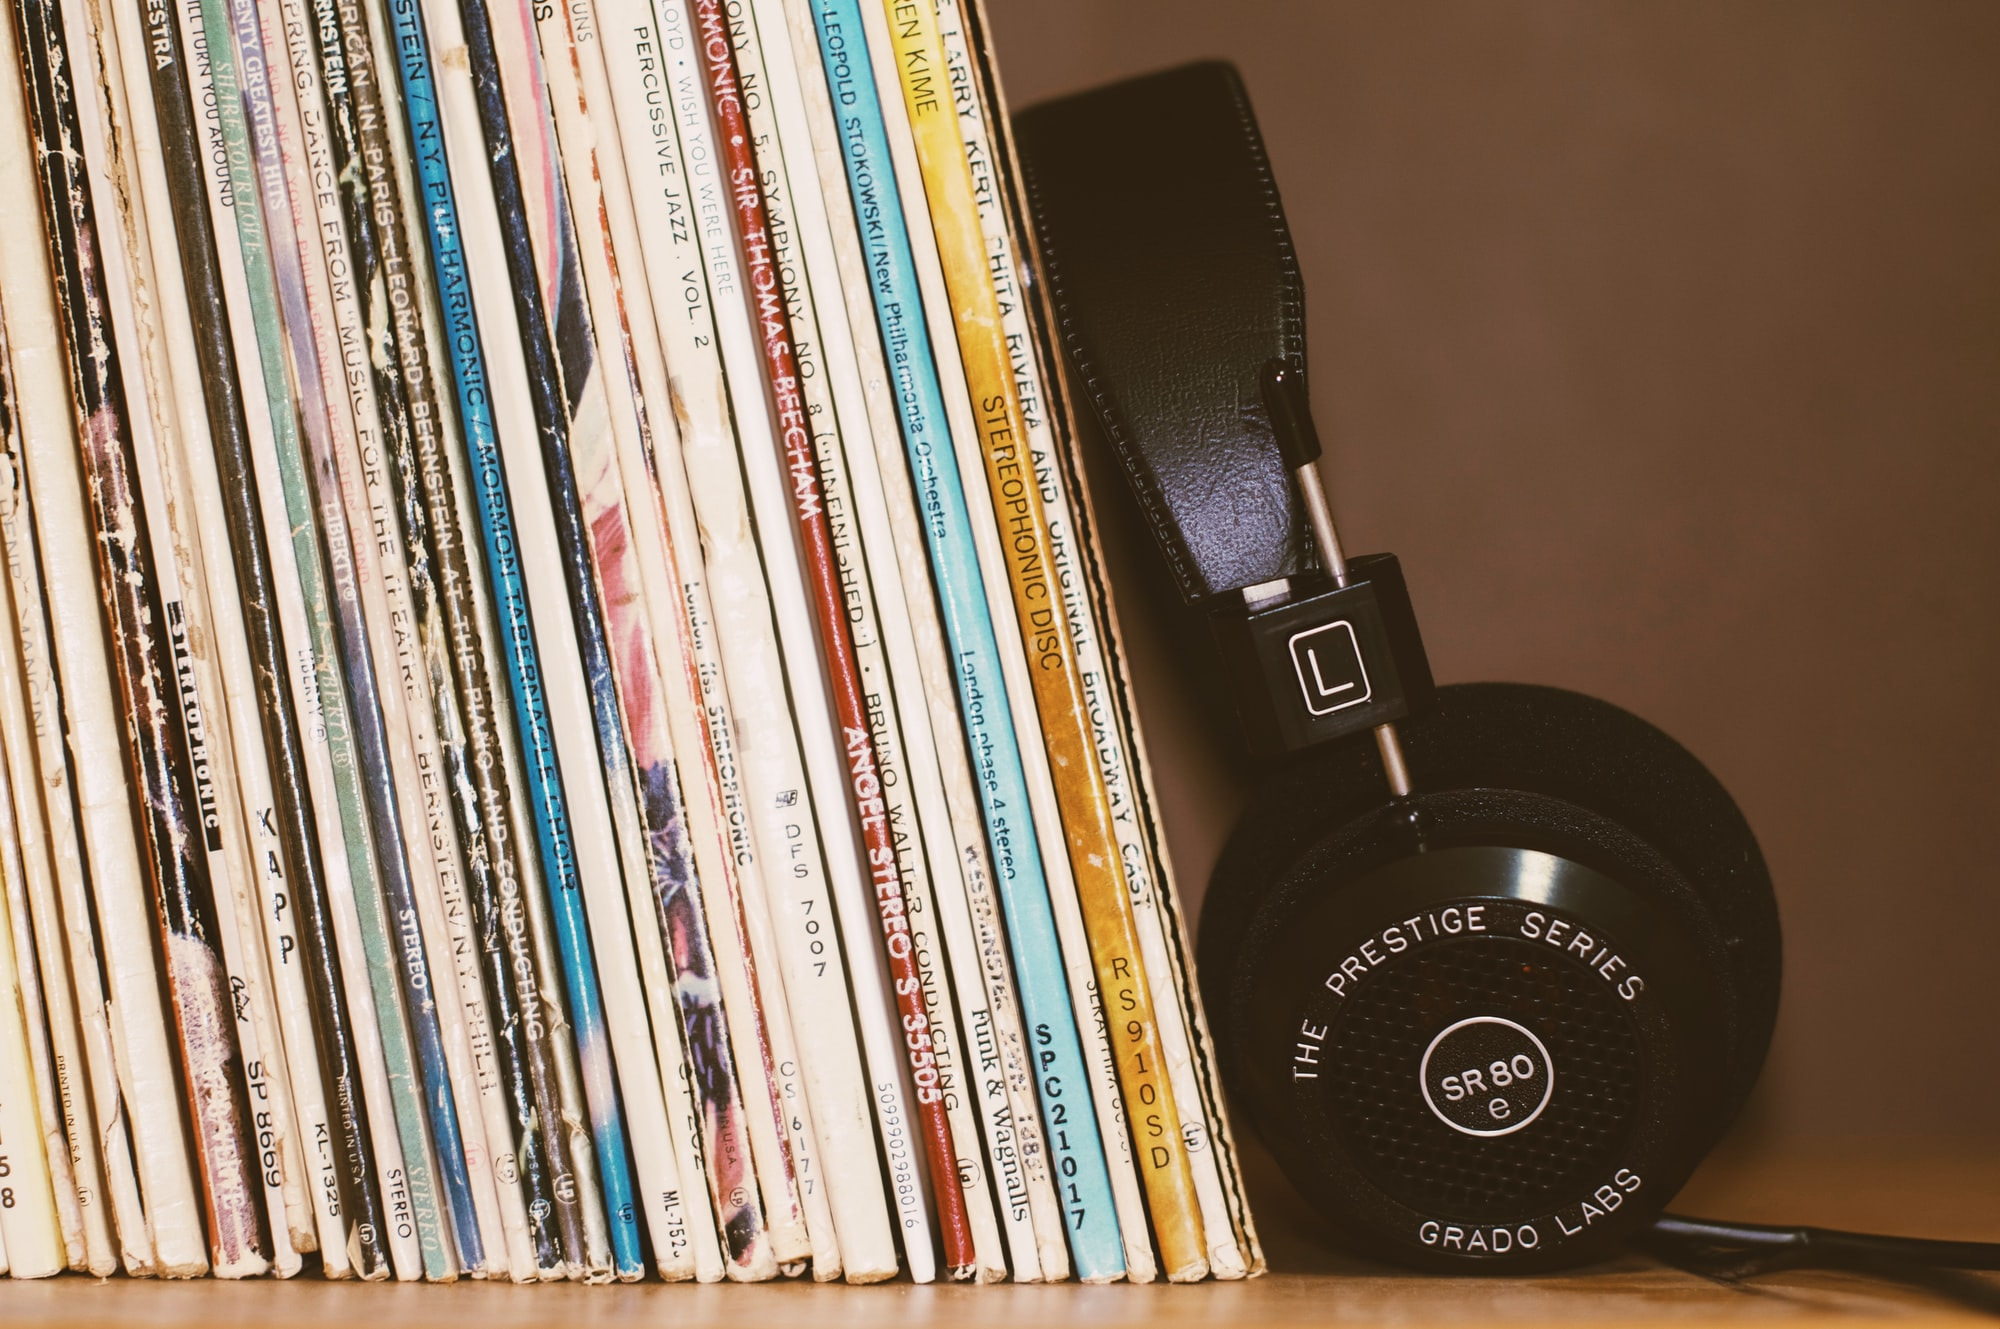 Vinyl + Grado Headphones